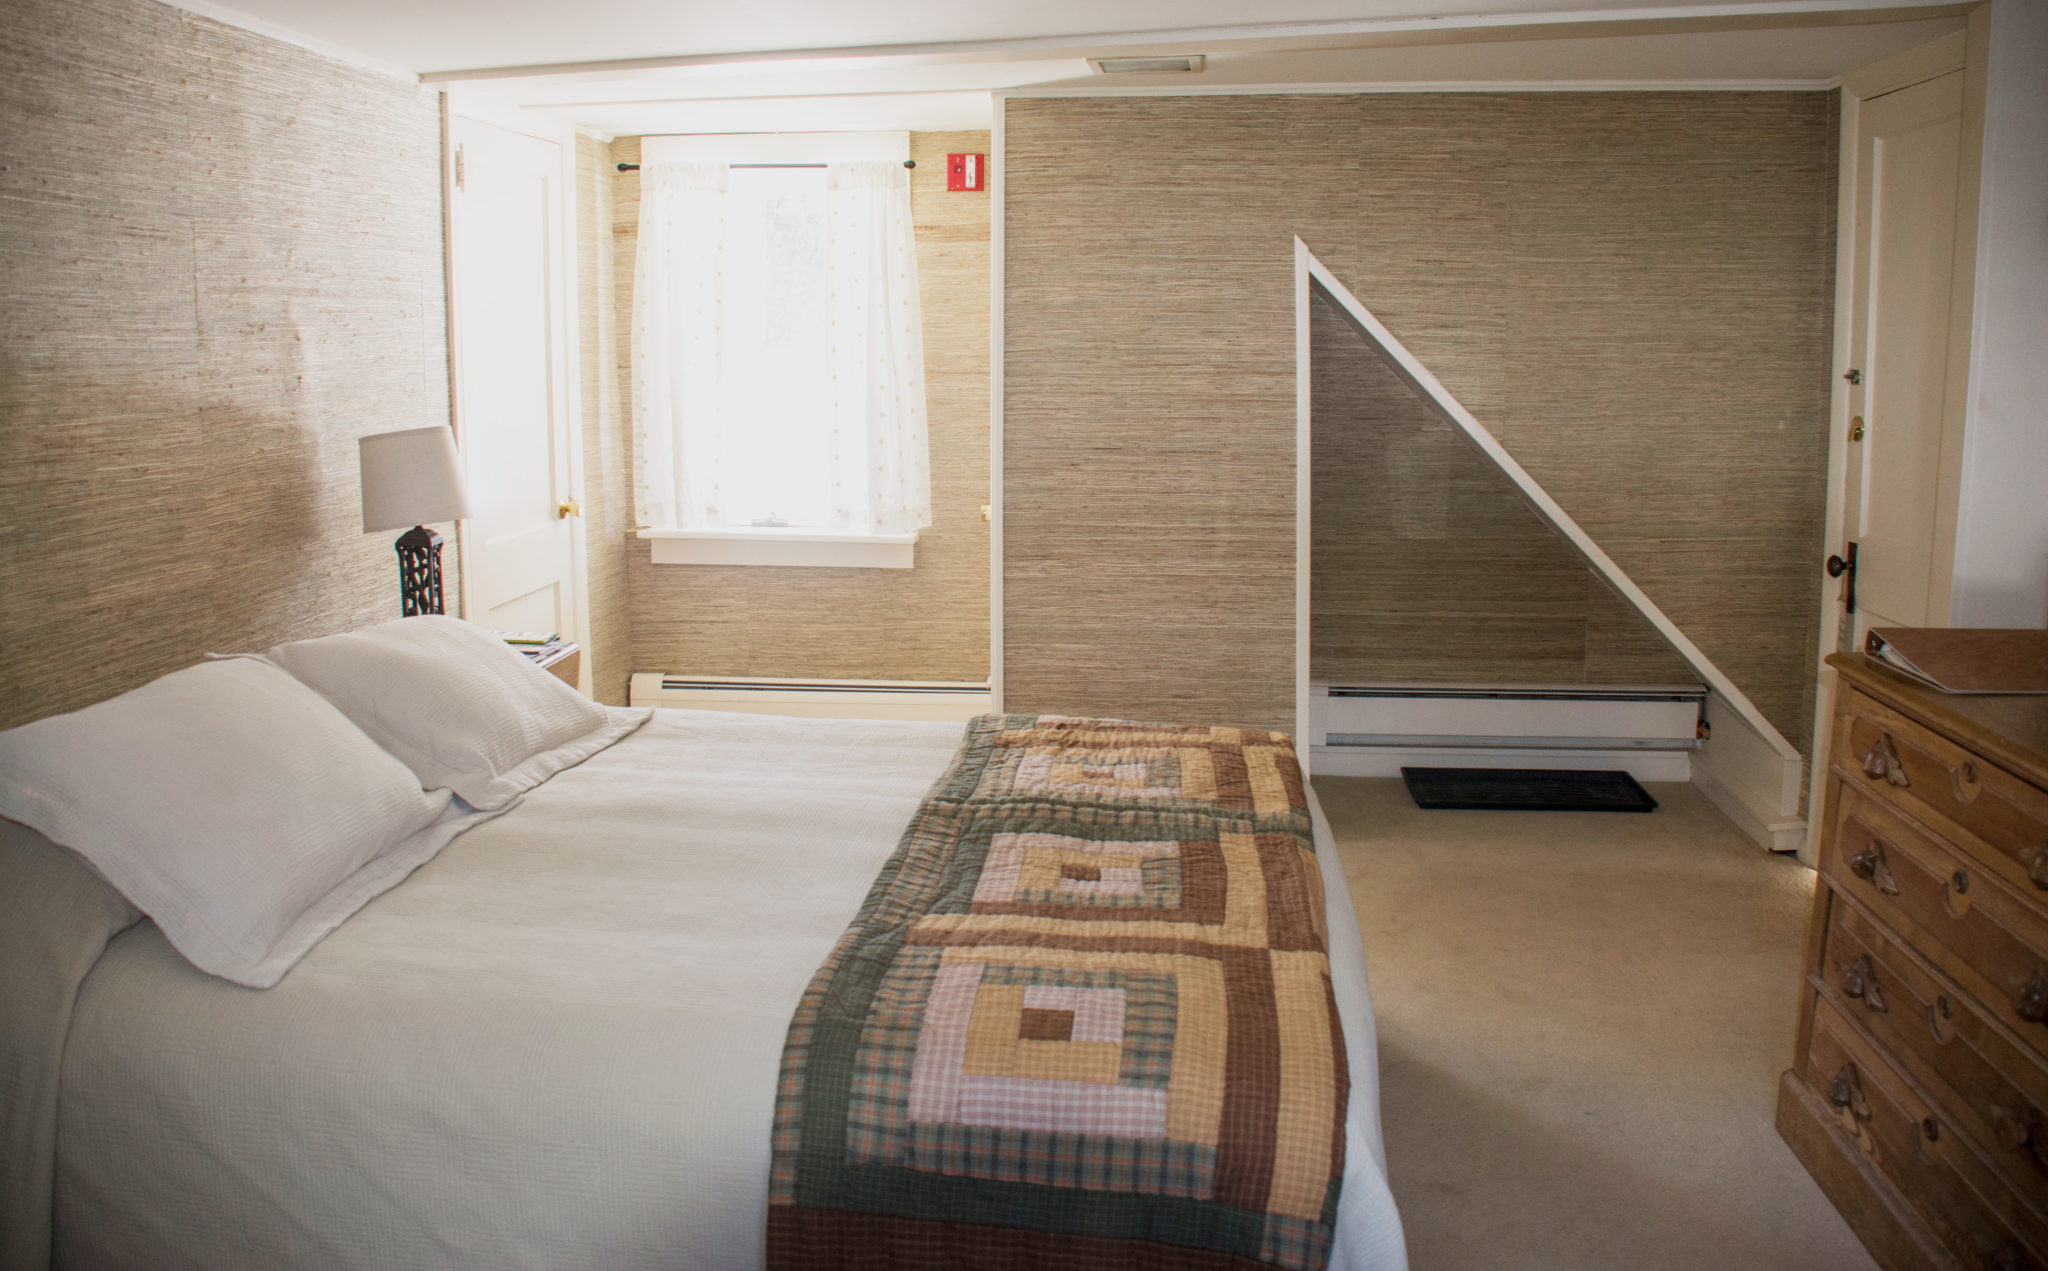 Bed with closet and window